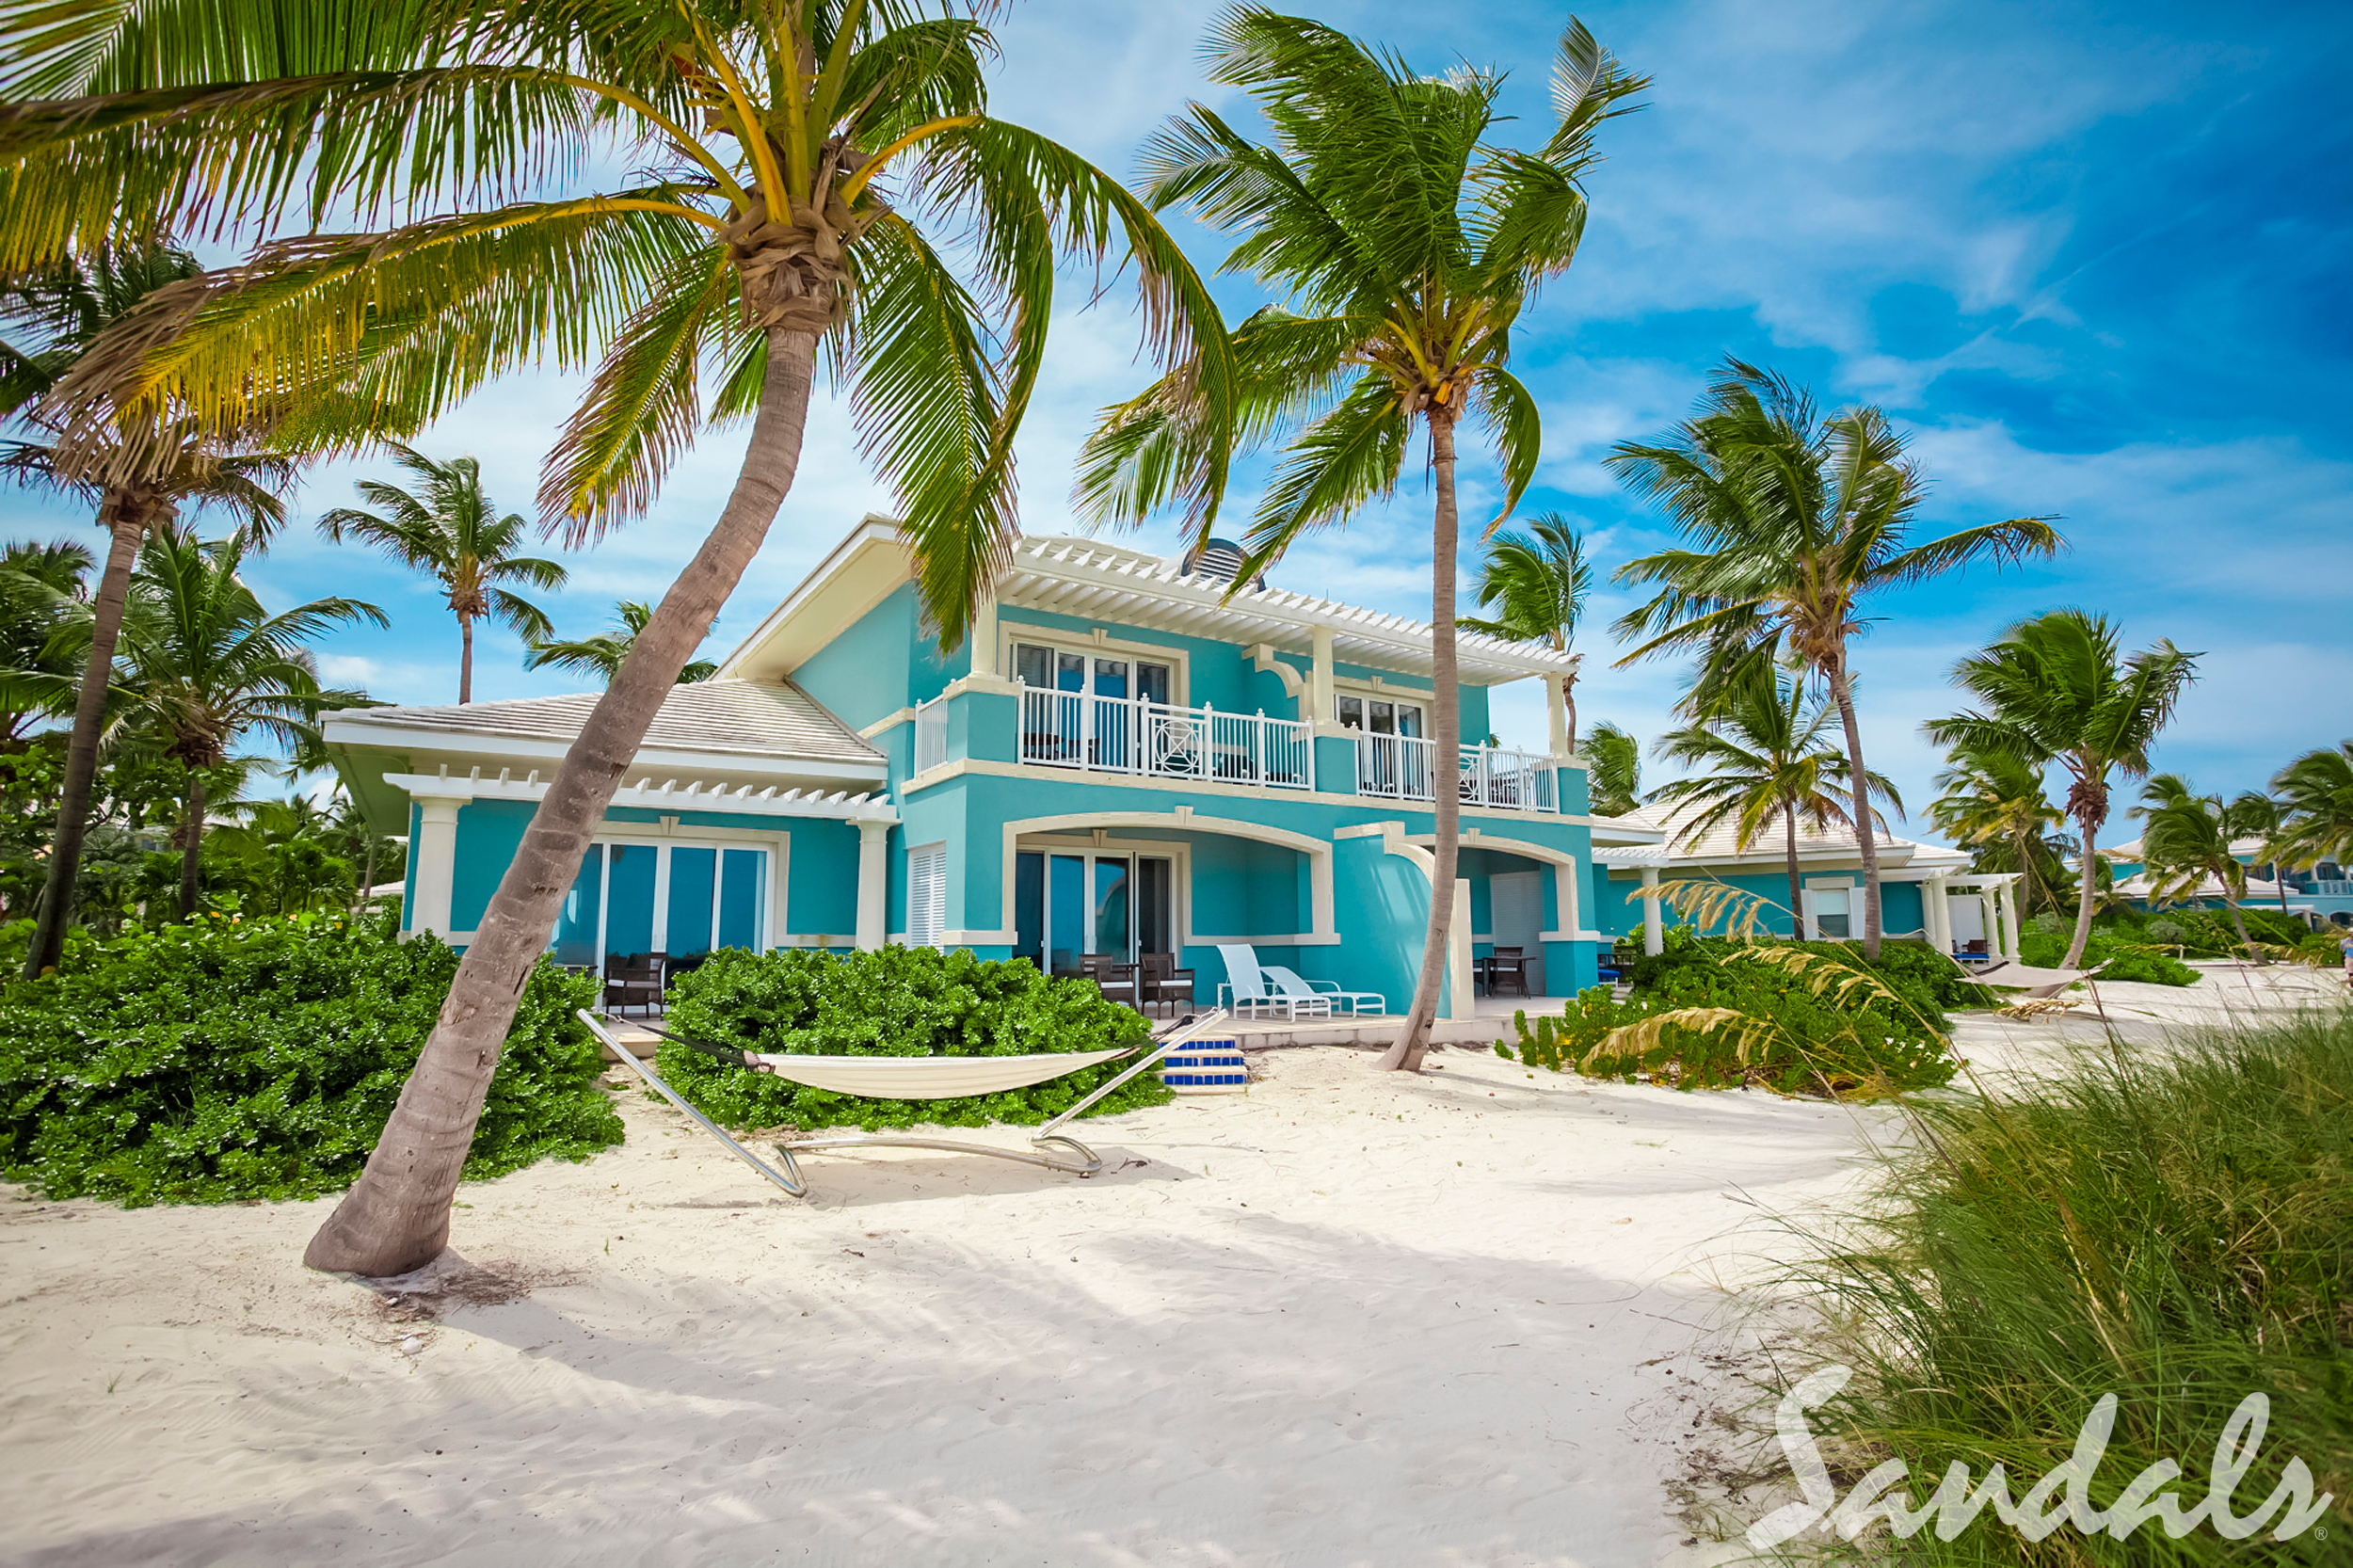 Sandals Emerald Bay-Seaside_Villa - Bahamas - Article Onze